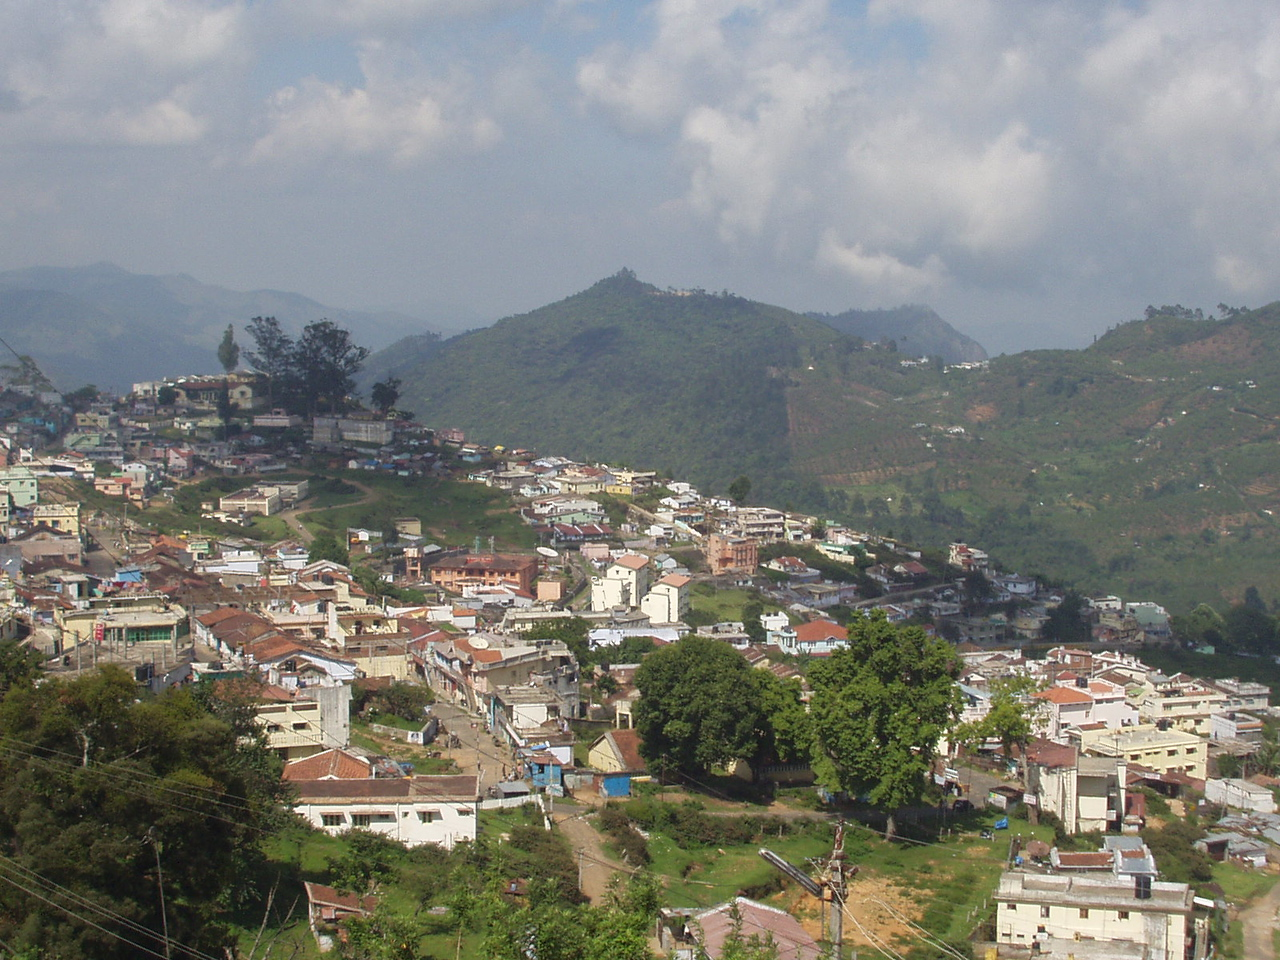 14 April: Kodai